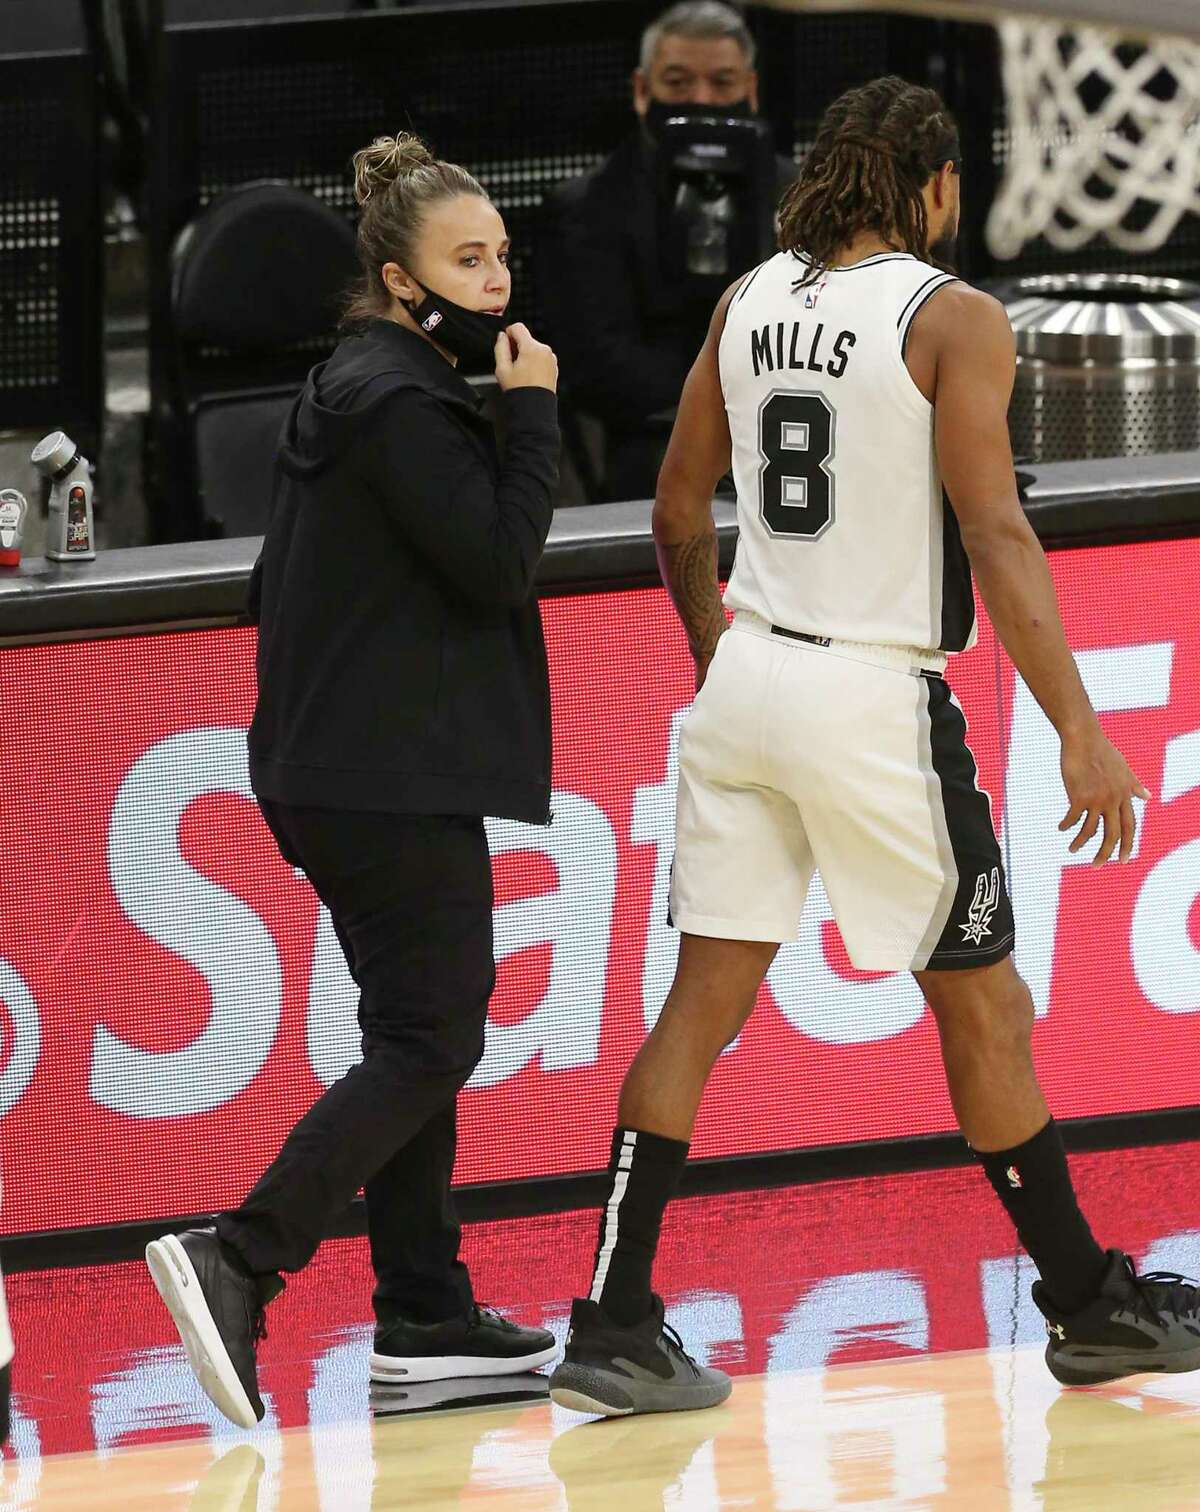 Assistant coach Becky Hammon (center) takes over the coaching duties after Gregg Popovich gets ejected from the game against the Los Angeles Lakers at the AT&T Center on Wednesday, Dec. 30, 2020.